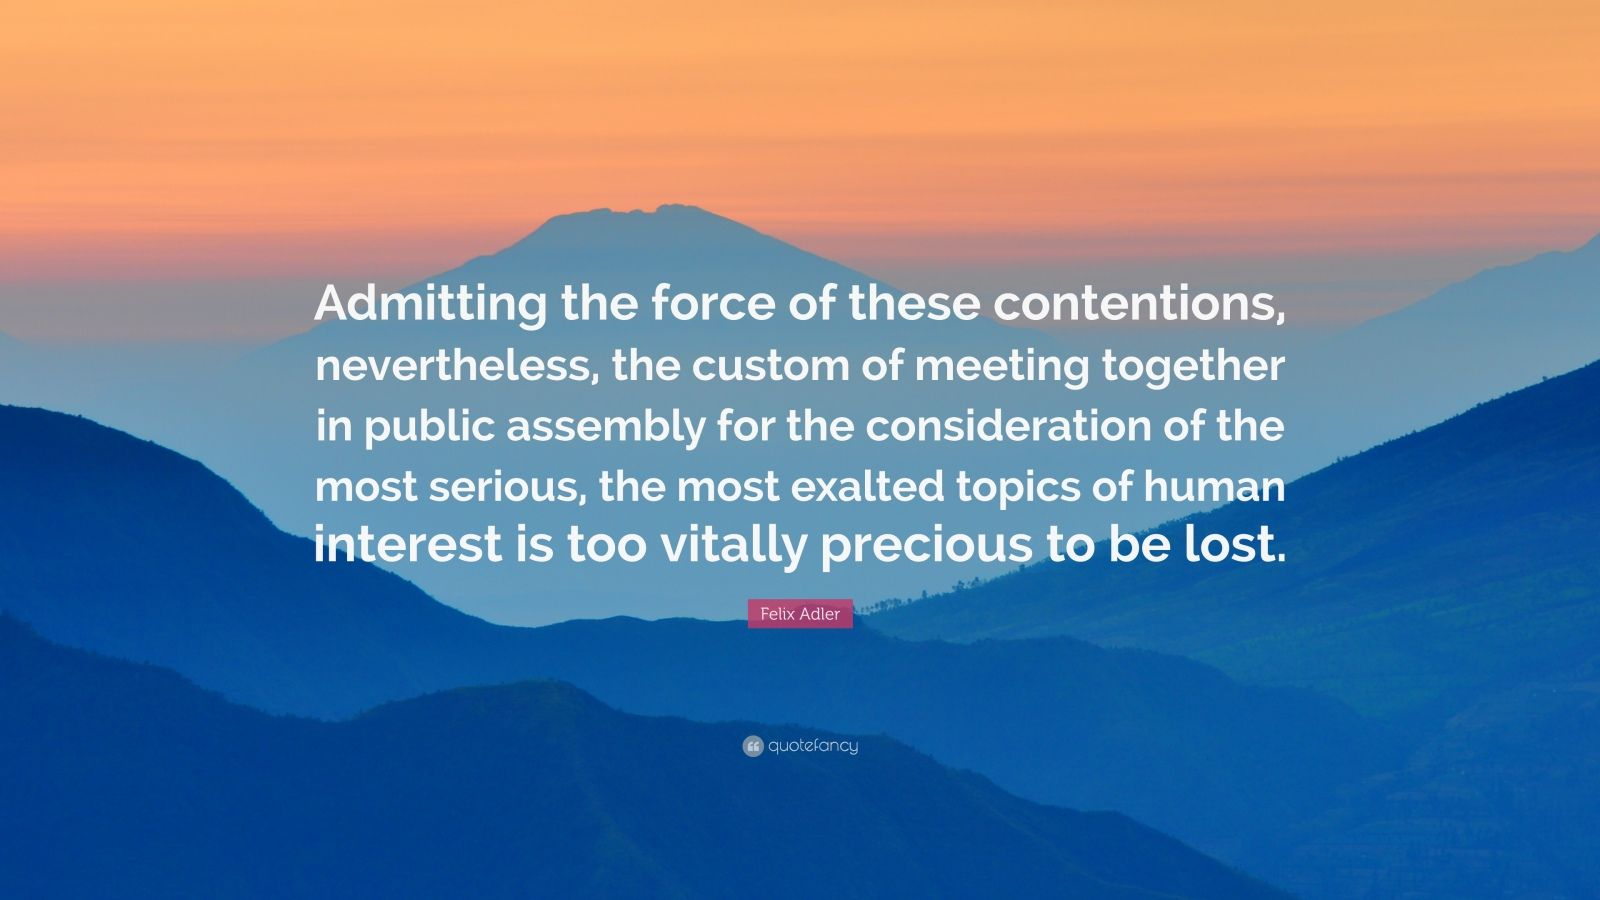 """Felix Adler Quote: """"Admitting the force of these contentions, nevertheless, the custom of meeting together in public assembly for the consideration of the most serious, the most exalted topics of human interest is too vitally precious to be lost."""""""